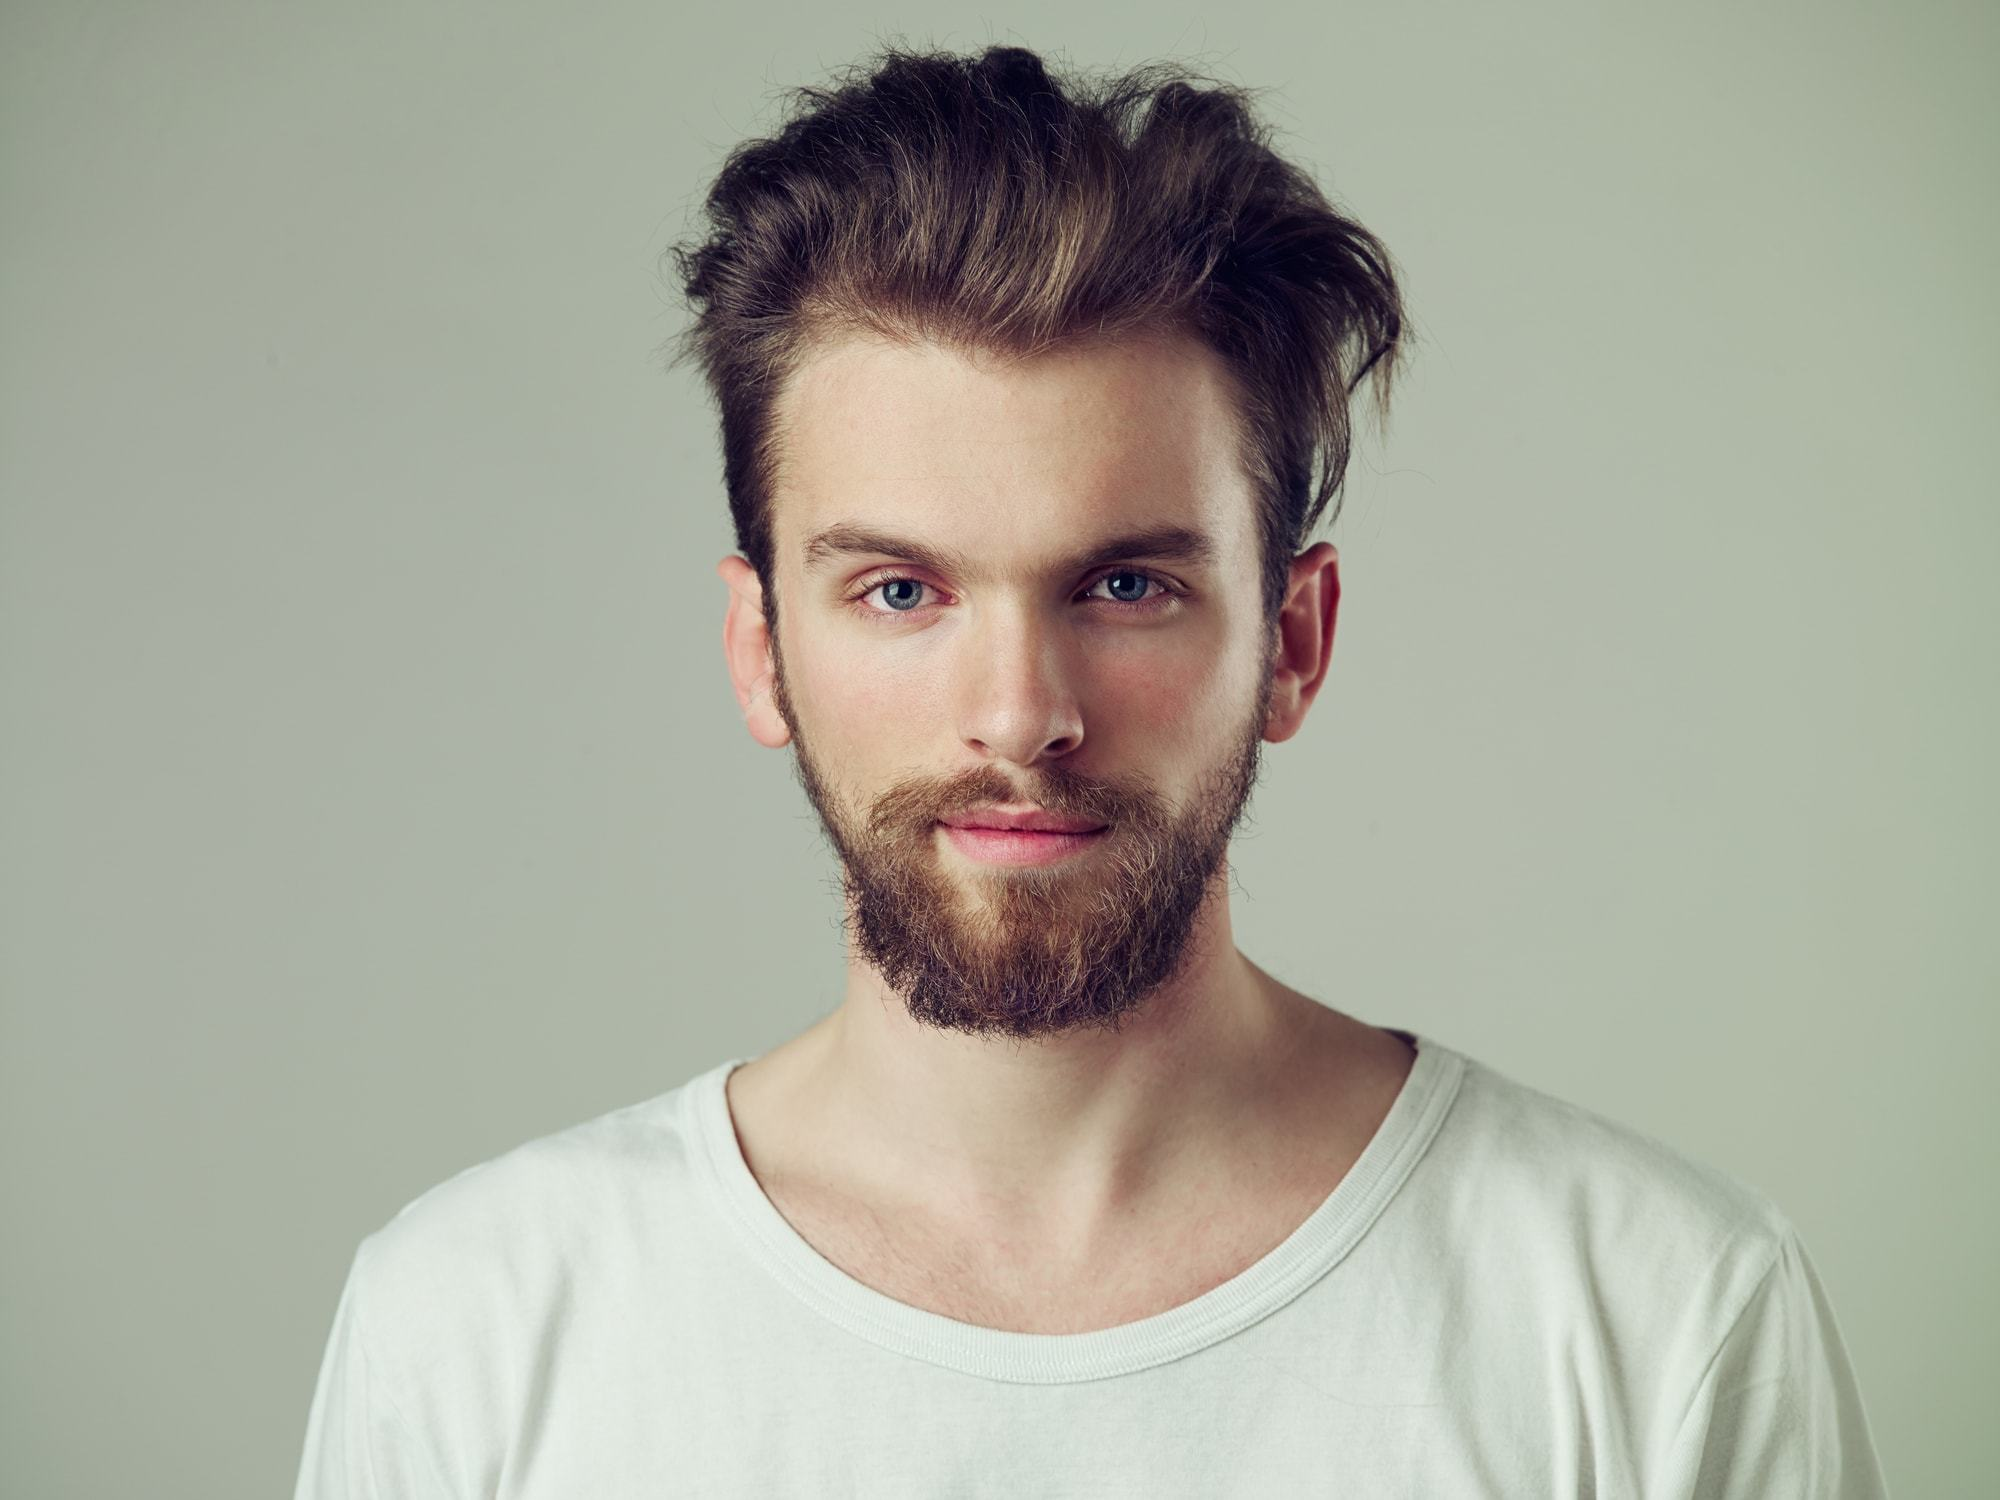 Messy Hairstyles Men Combed Back Volume